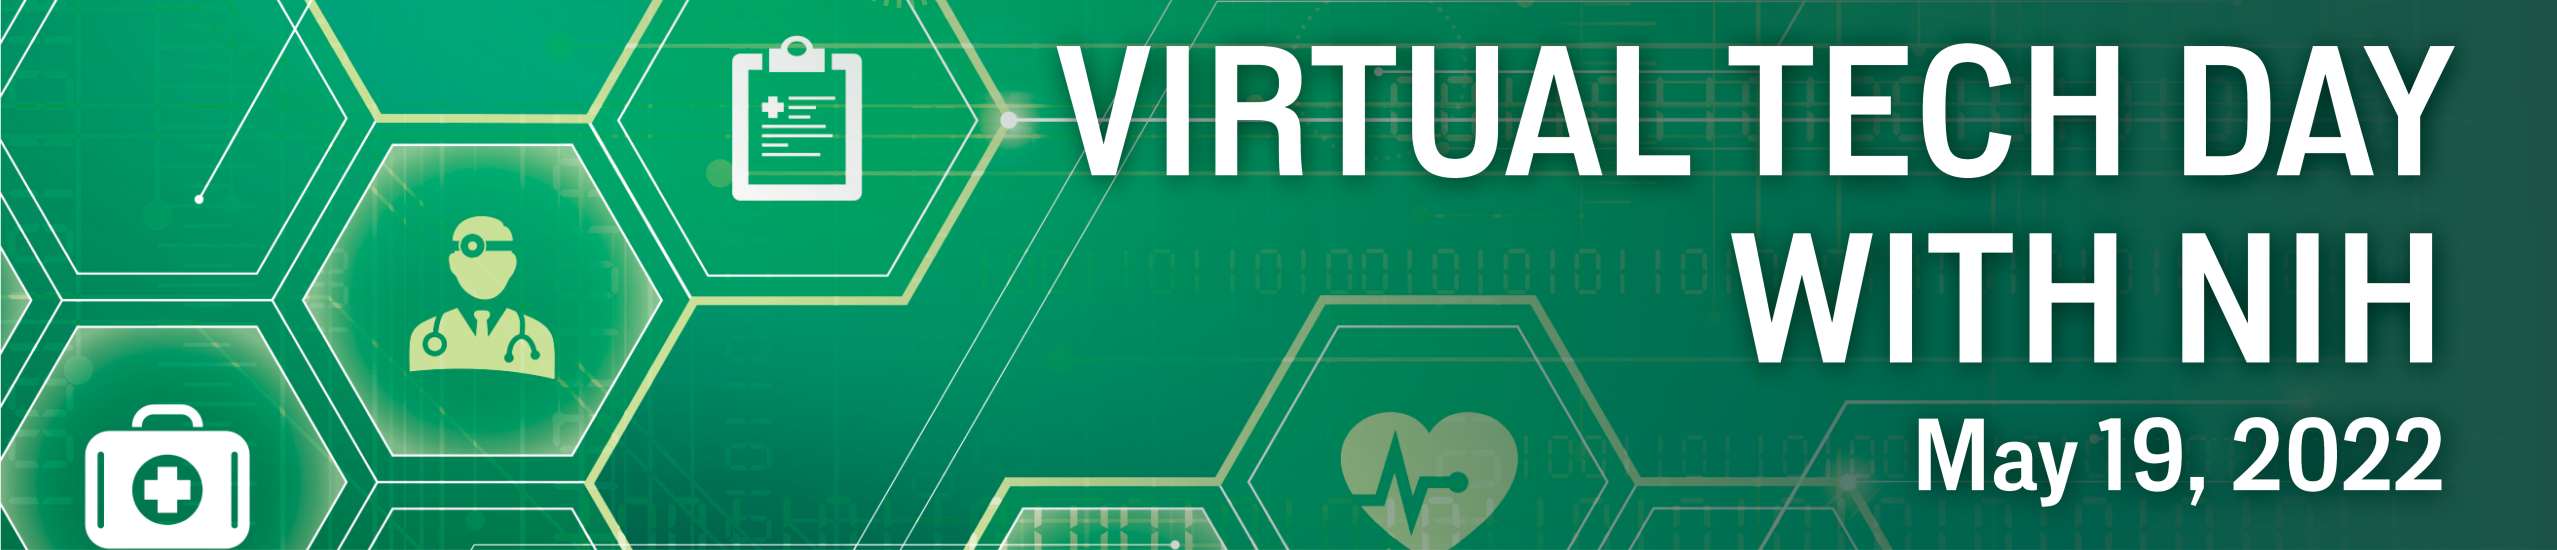 National Institutes of Health (NIH) Virtual Tech Day